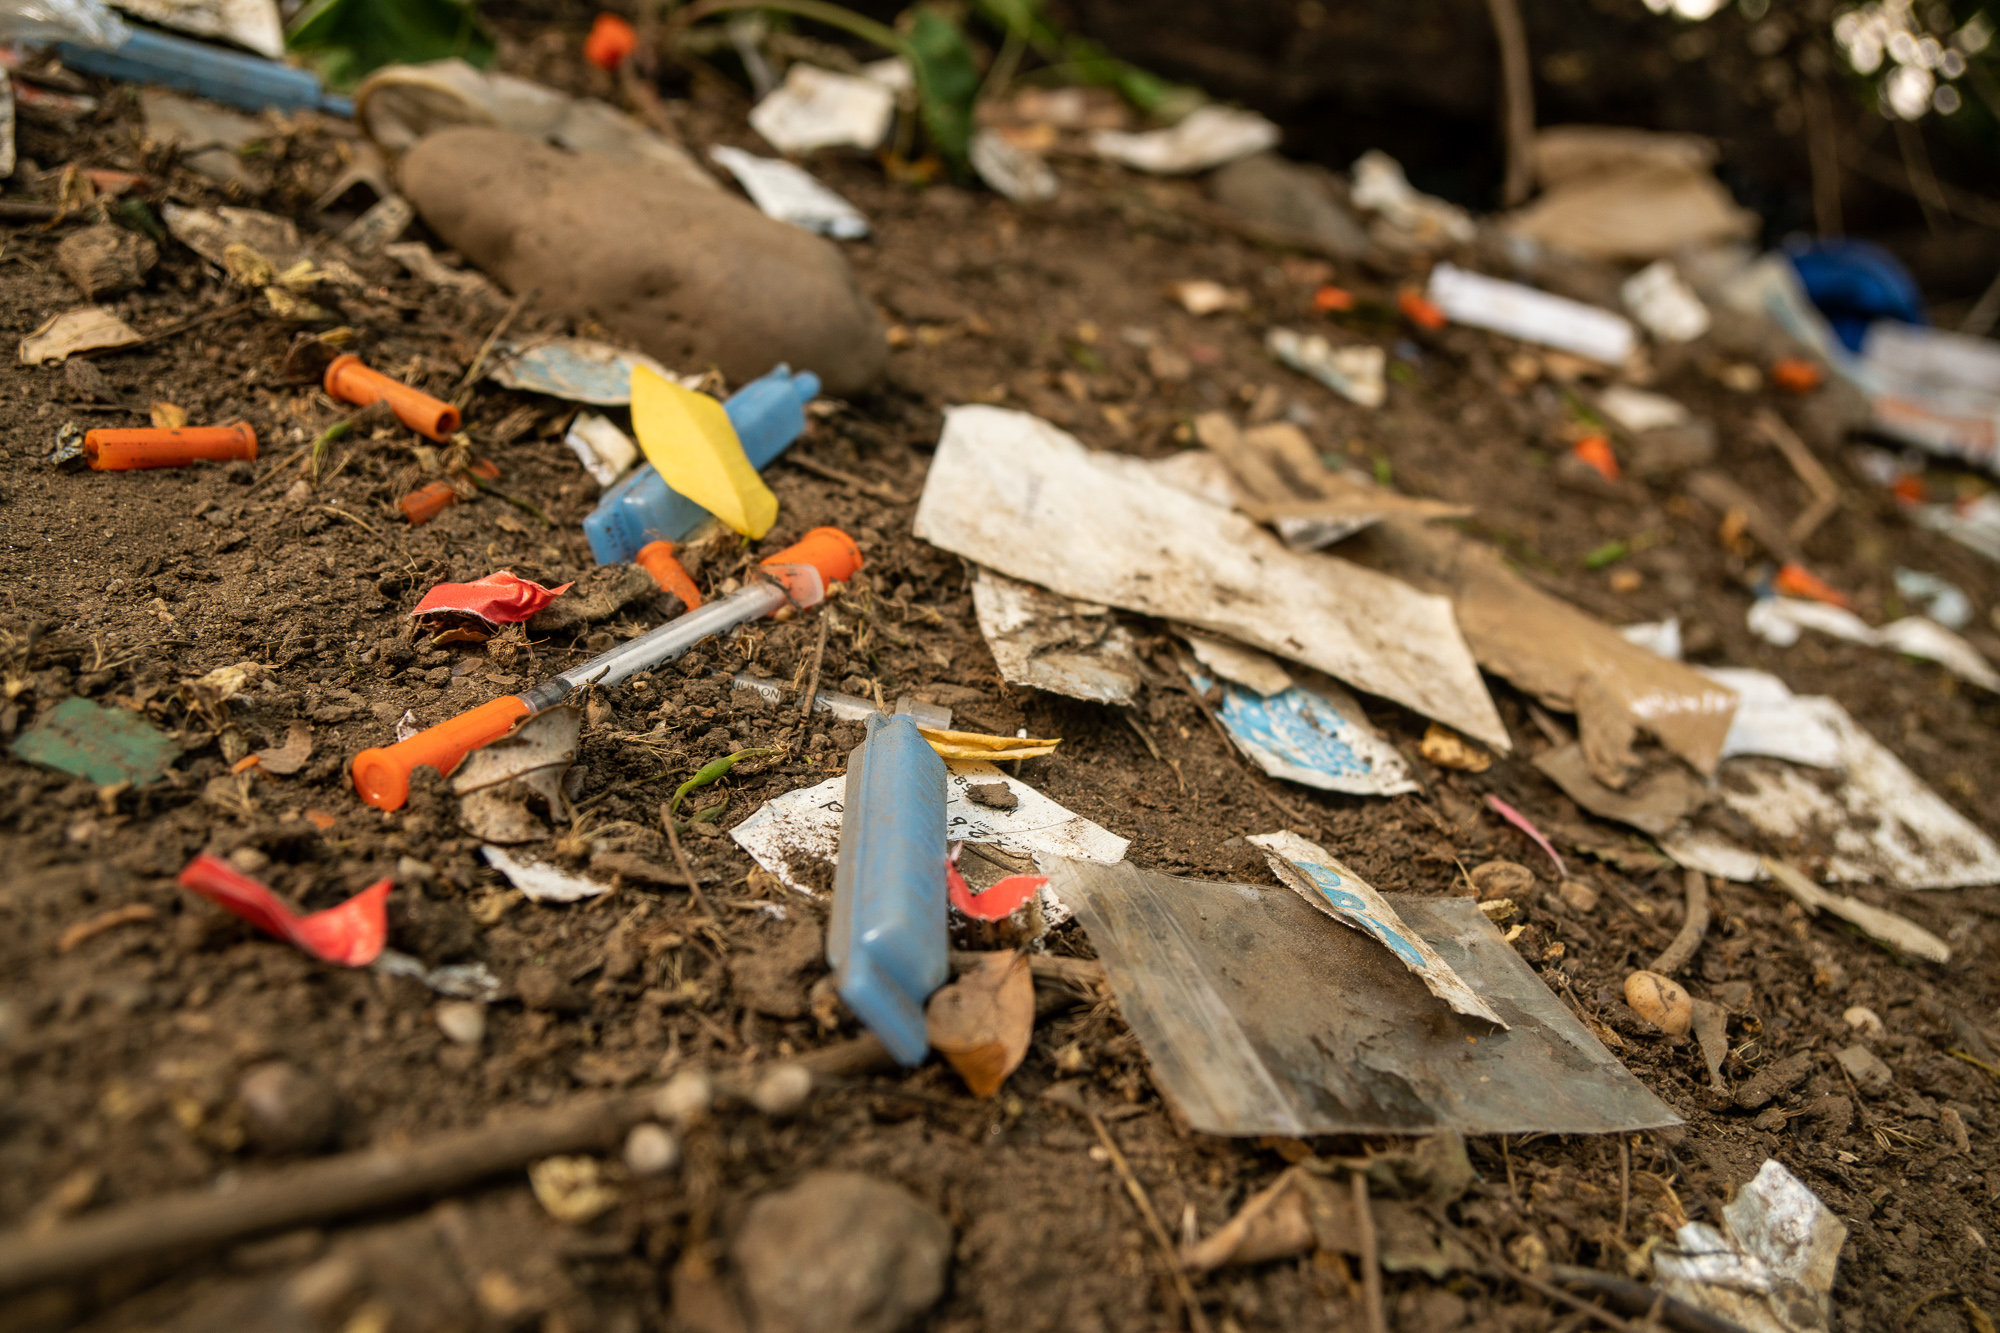 Old syringes; needle caps; water containers. Only some of all the drug paraphernalia on the ground in Highbridge Park.